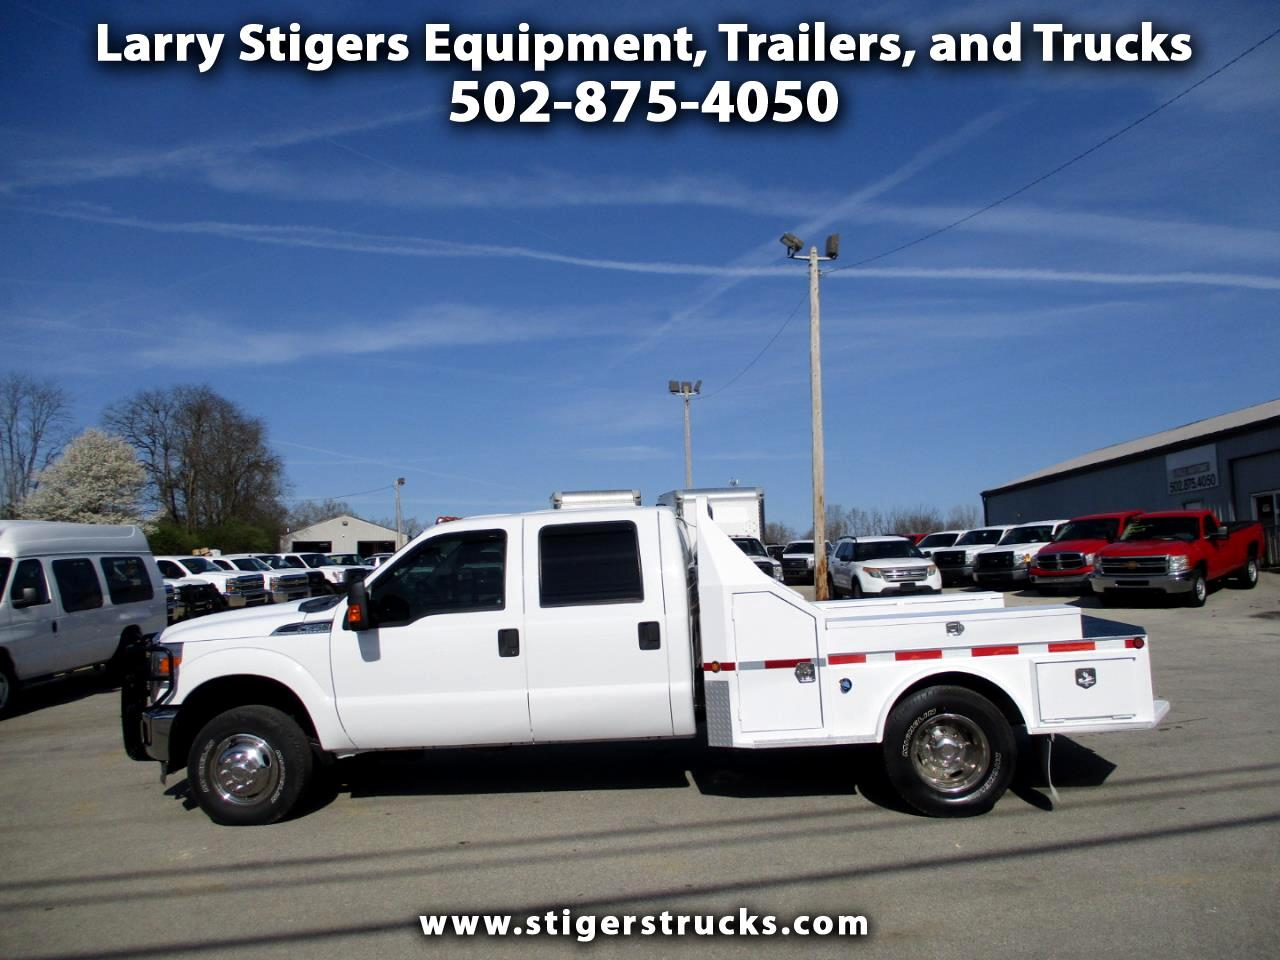 Ford F-350 SD XLT Crew Cab Long Bed 4WD DRW 2012